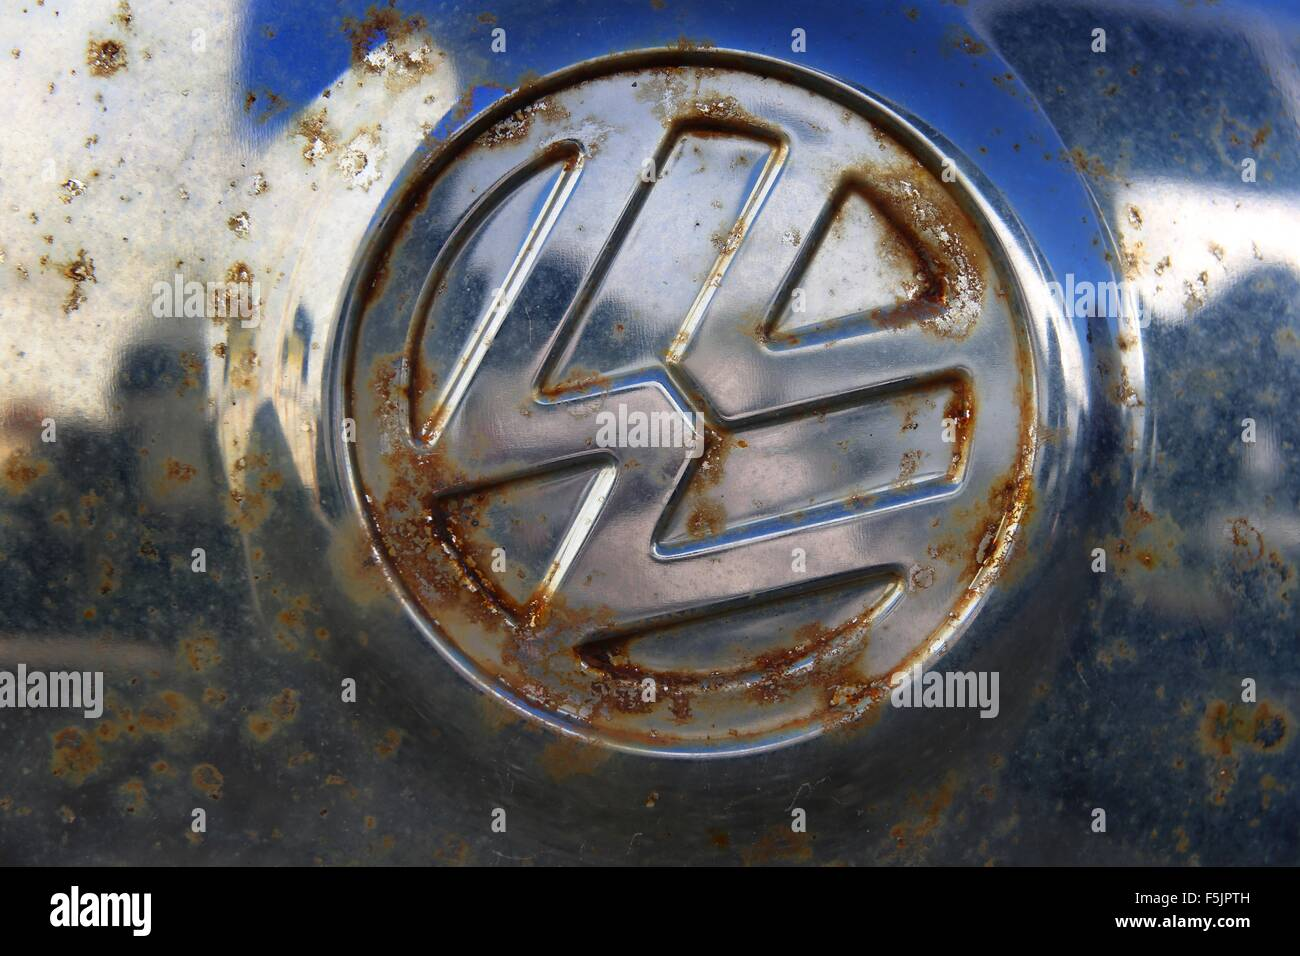 A Rusty Vw Logo On The Hubcap Of An Old Vw Beetle At A Garage In